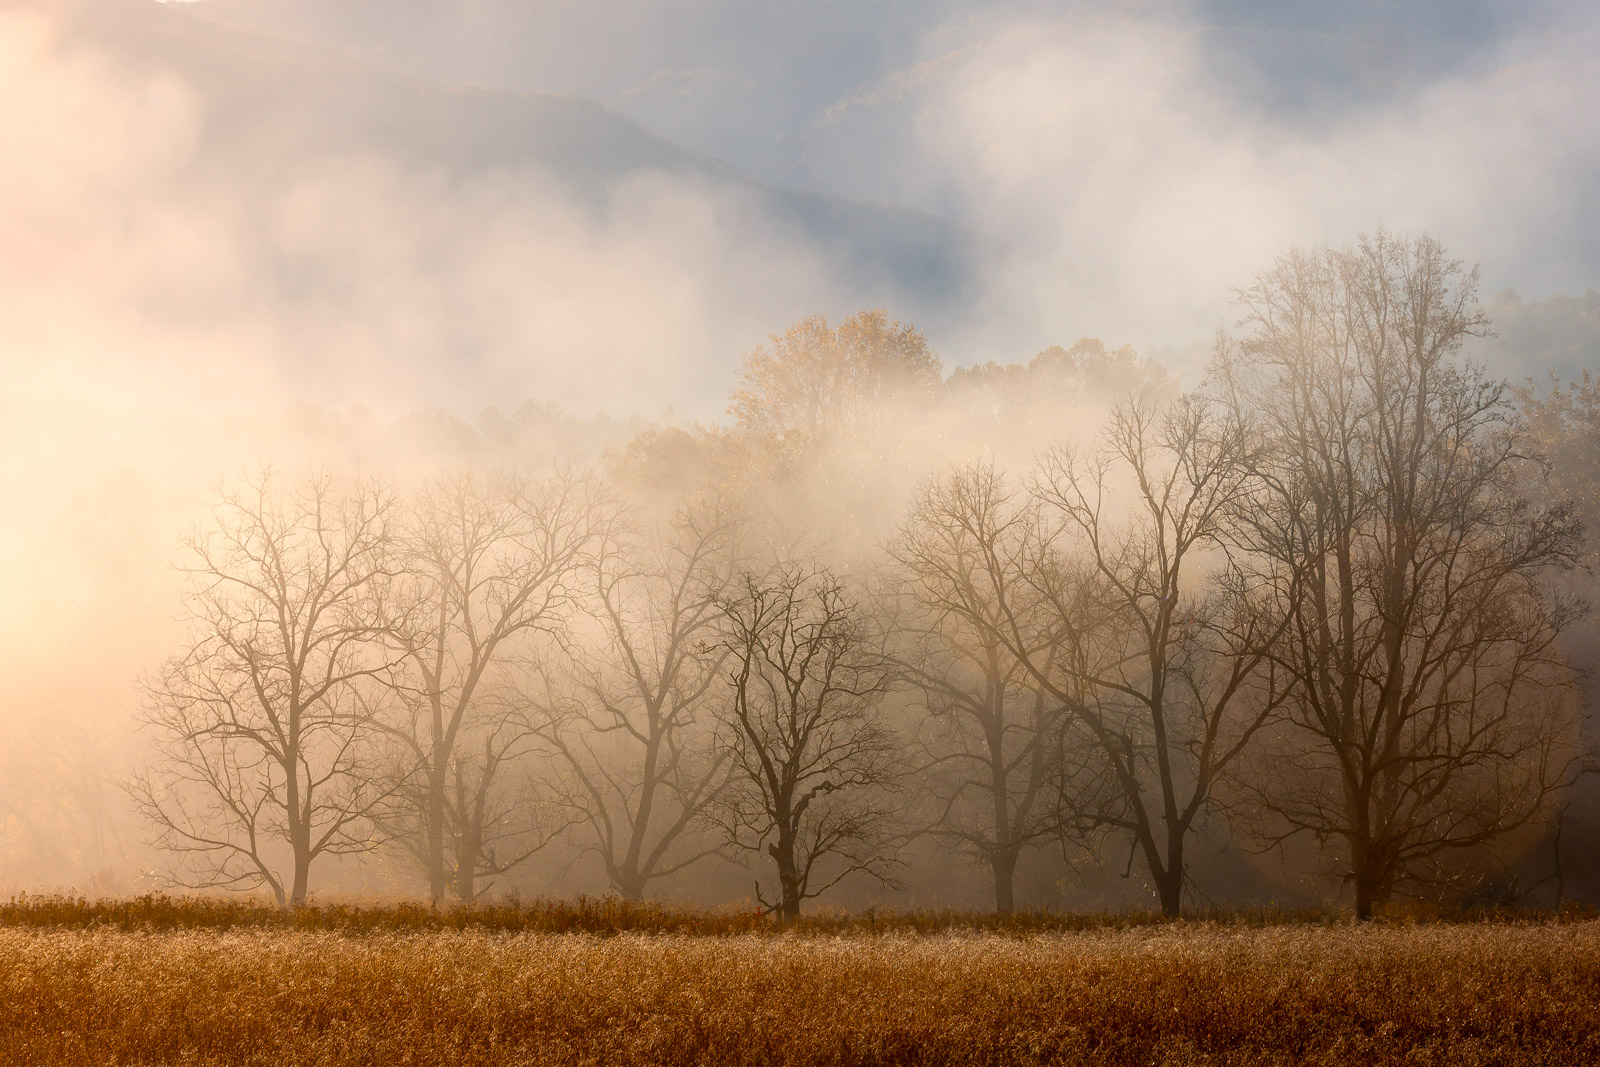 Tennessee, Smoky Mountains, Cades Cove, Fall, Fog, limited edition, photograph, fine art, landscape, photo